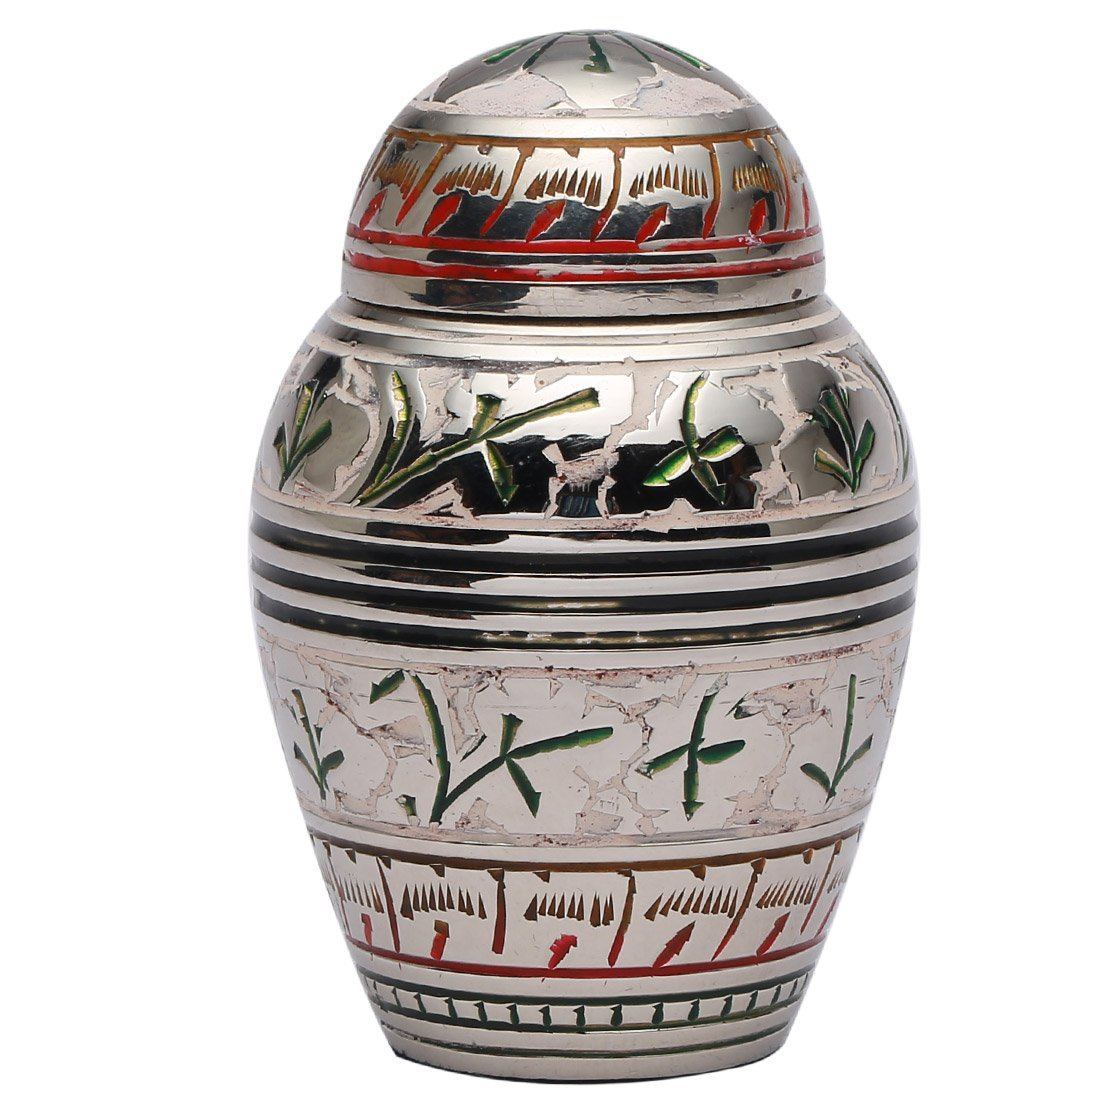 Small Urns for Human Ashes, Silver & White Floral Memorial Keepsake Cremation Urn